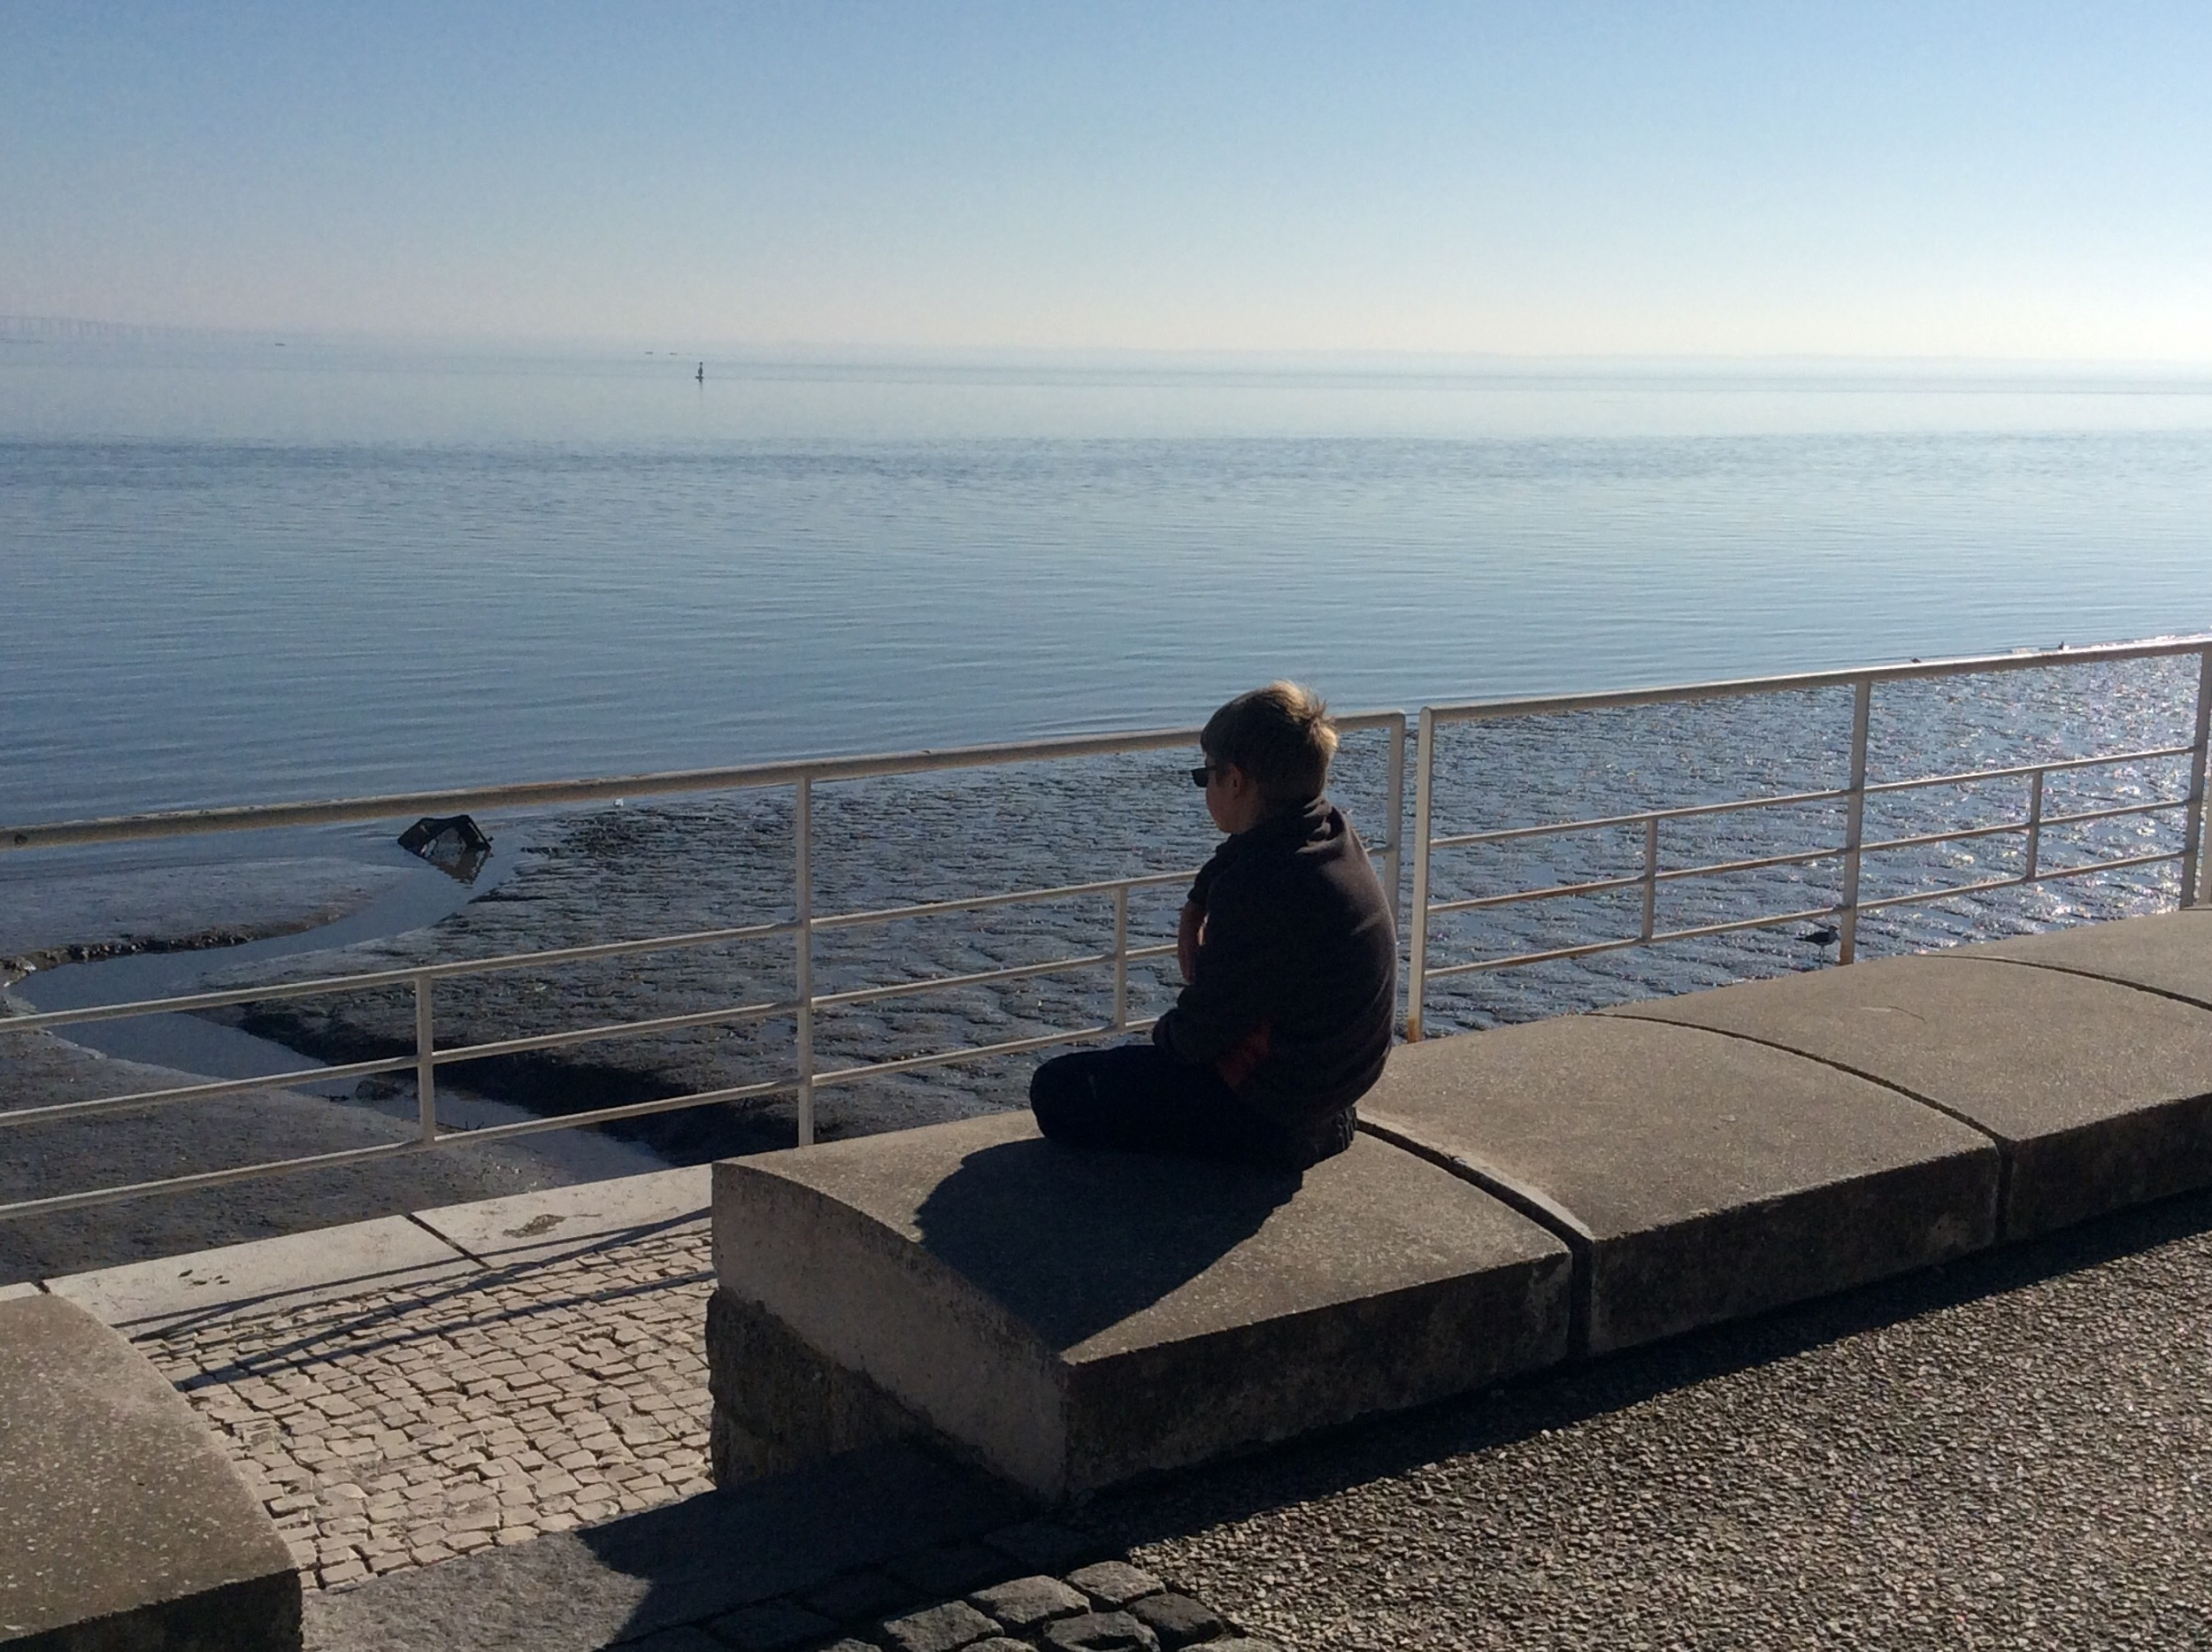 Liam in deep thought overlooking the Tagus River